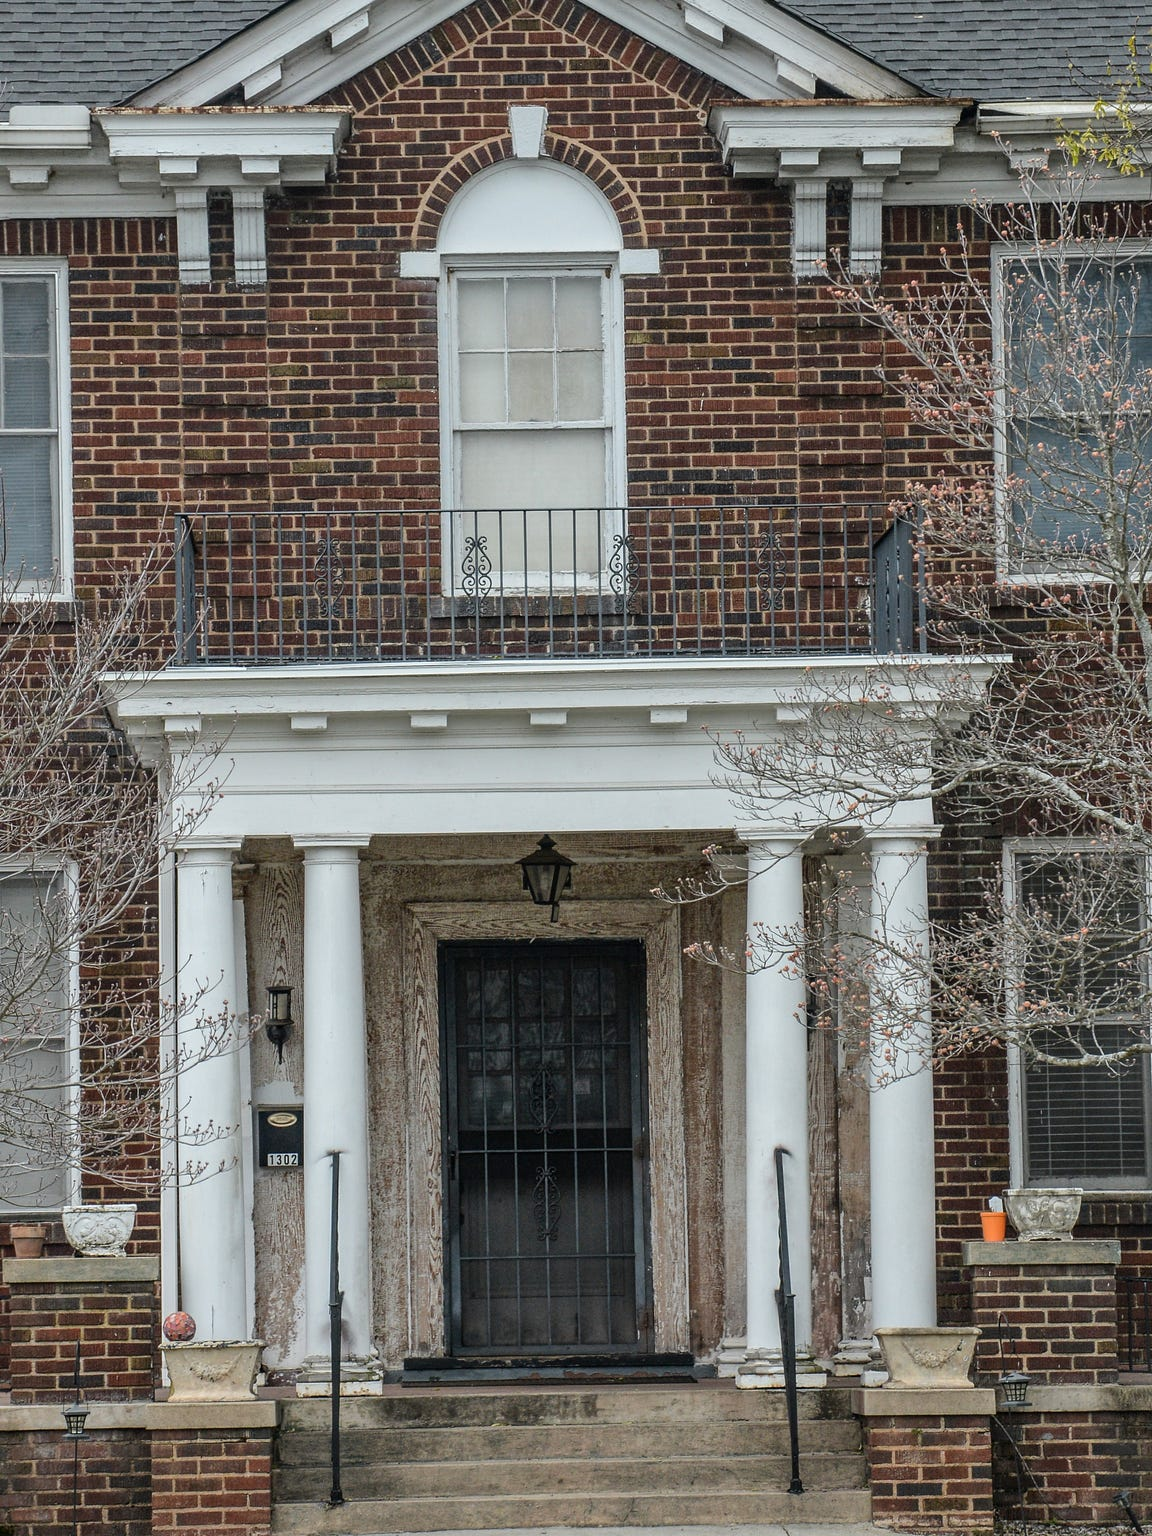 Upstate Residential Care, an assisted-living facility on South McDuffie Street in Anderson, has had at least 21 dangerous or troubling incidents in the last five years that have required a police response. Many of the incidents were not reported to state regulators who oversee the home.